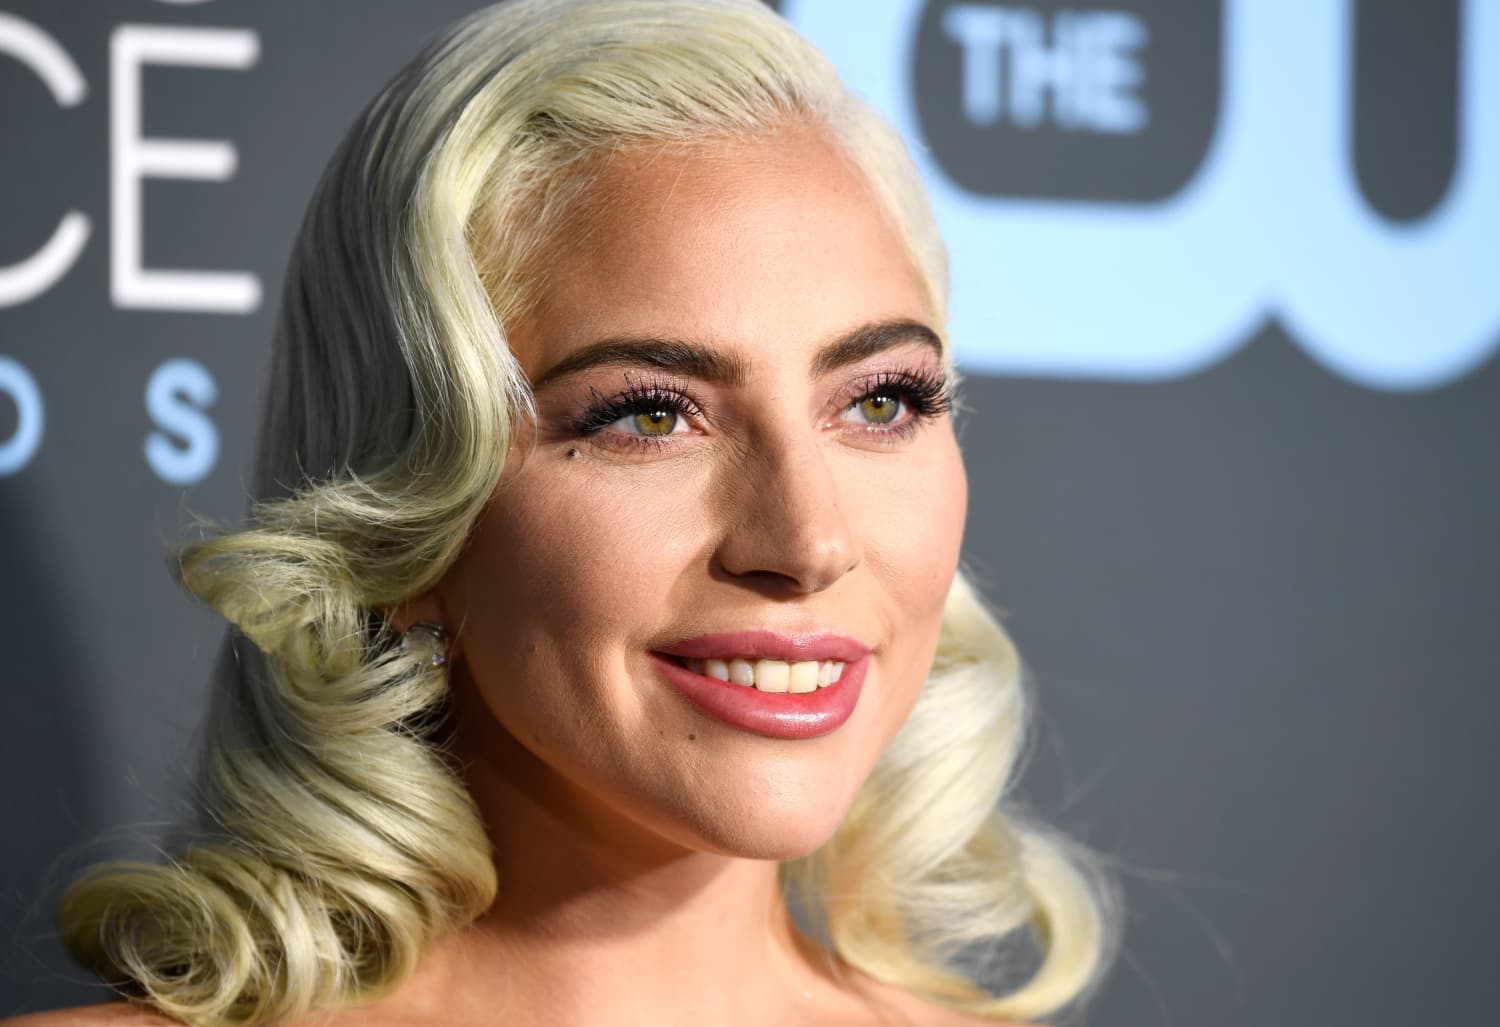 Does Lady Gaga Put Her Grammys on an IKEA Shelf? An Investigation